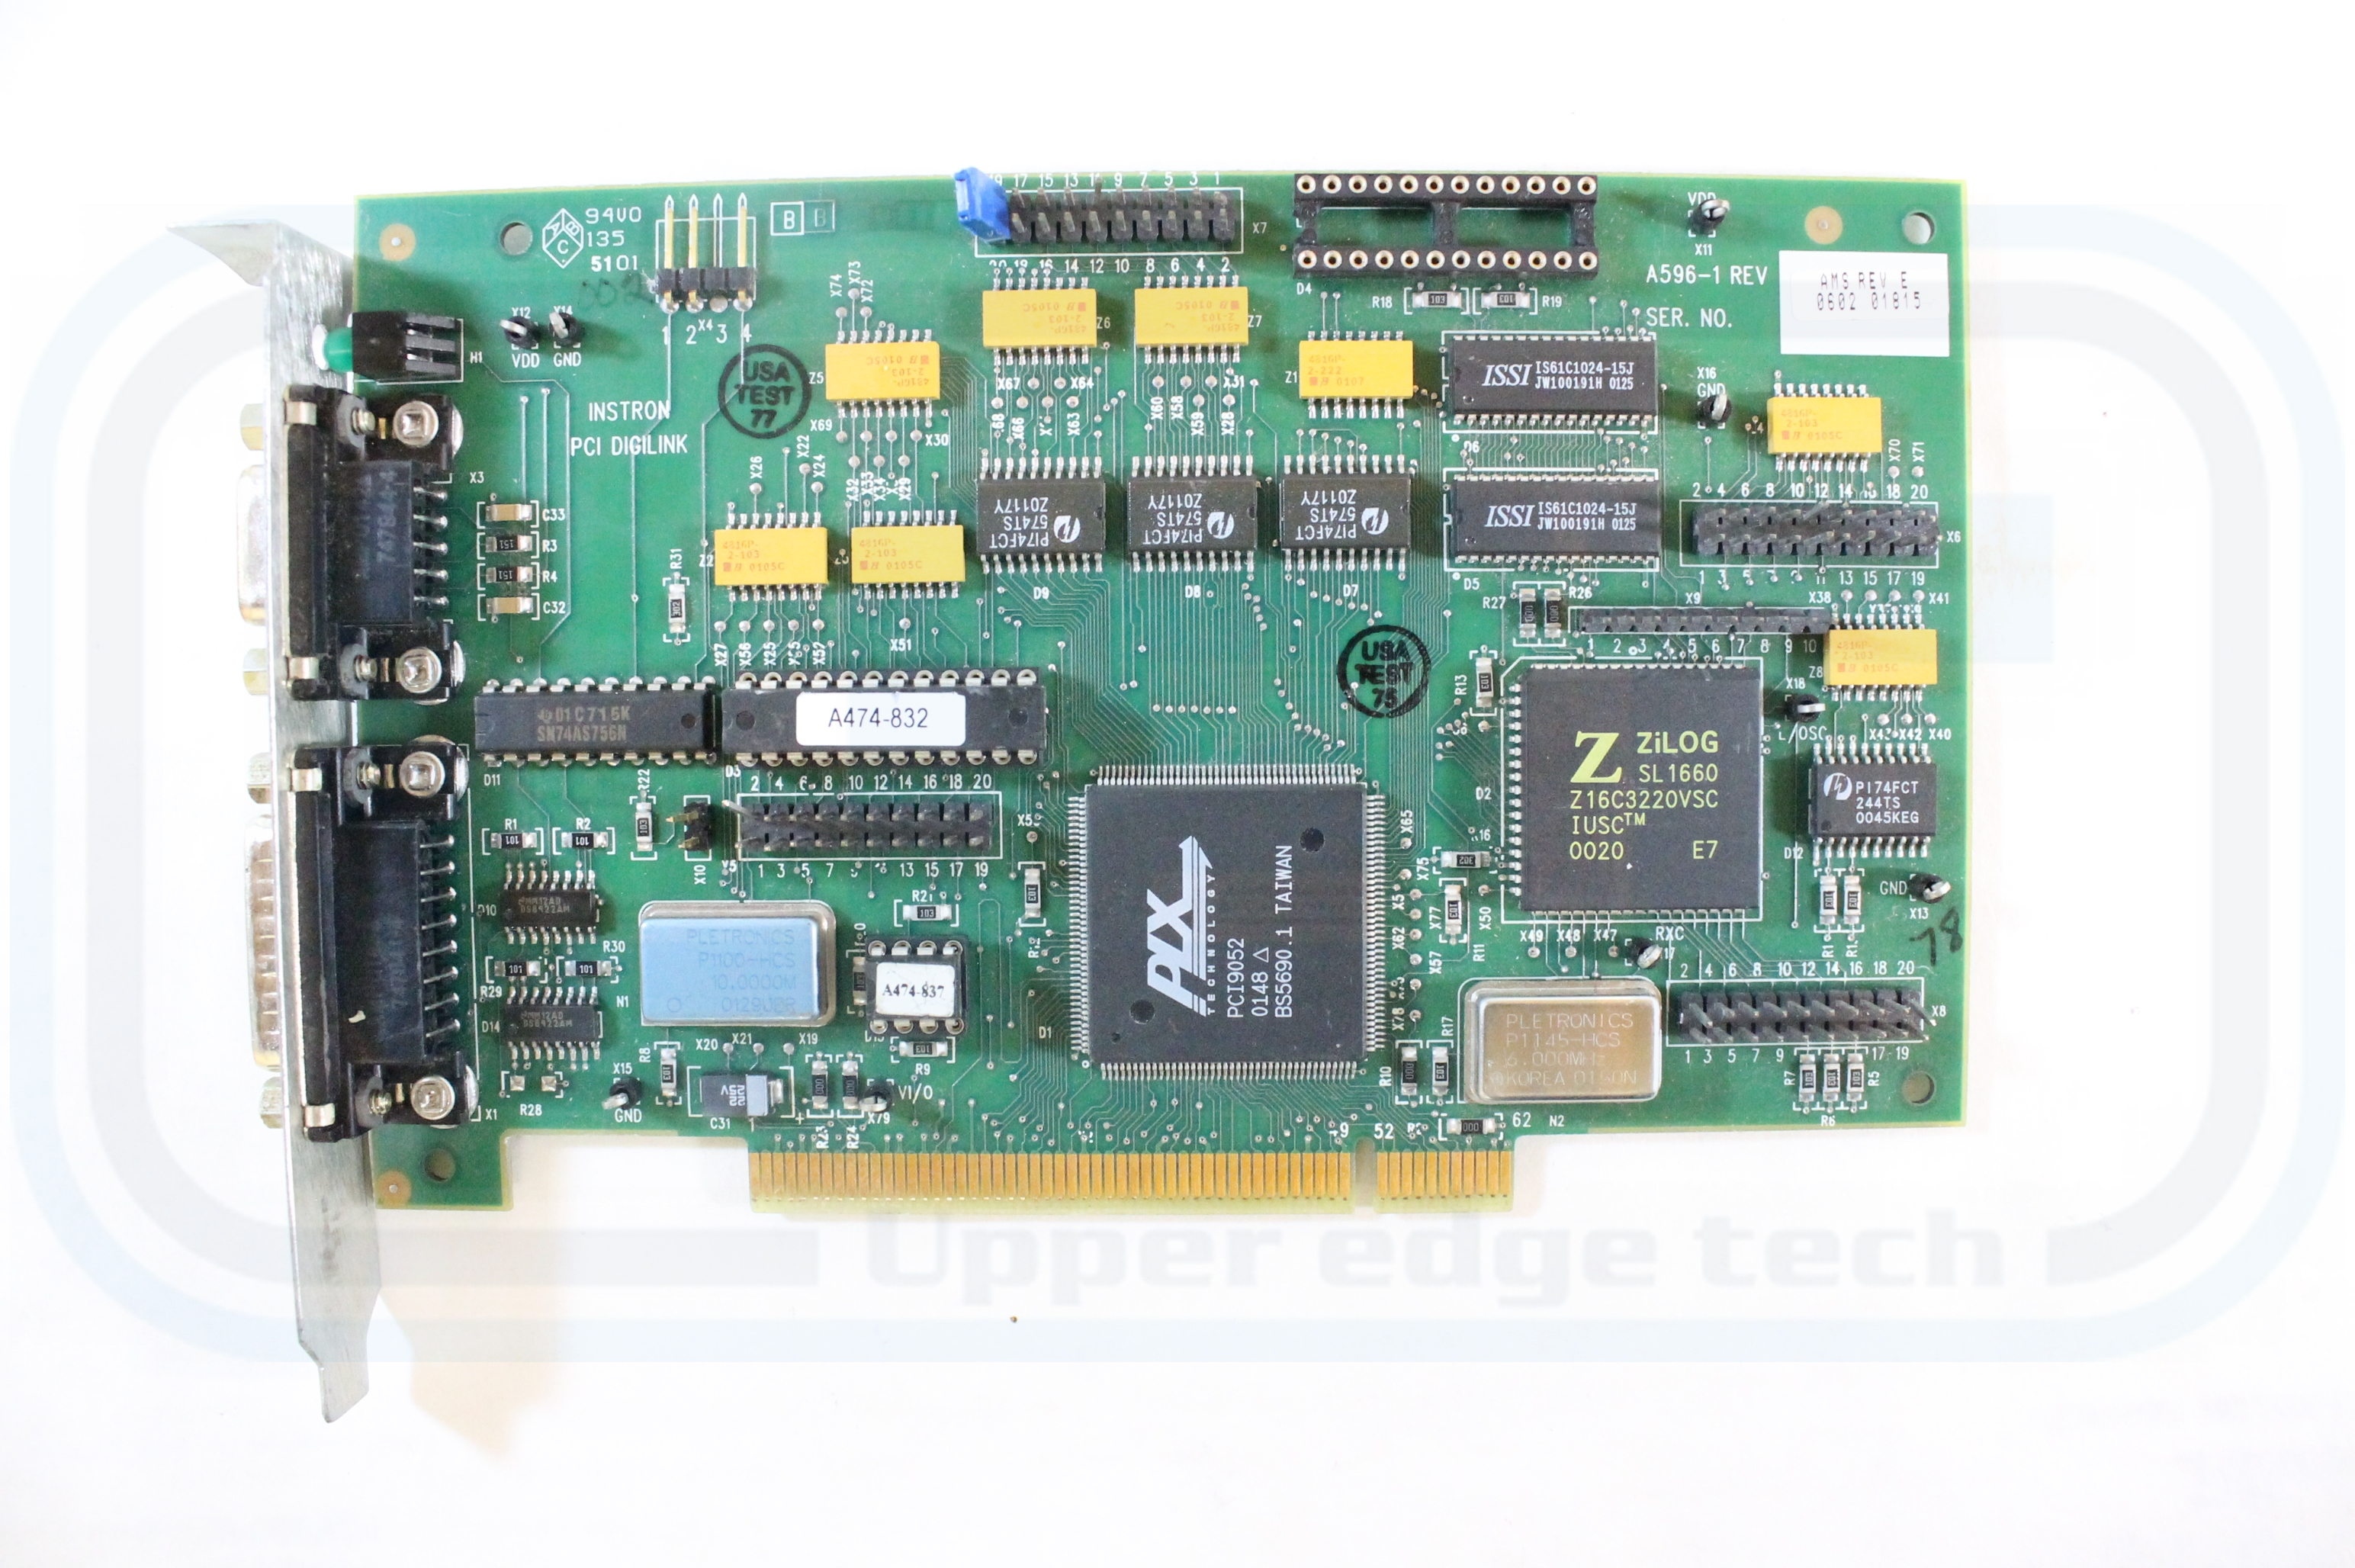 AIRLINK PCI WIRELESS CARD DRIVER